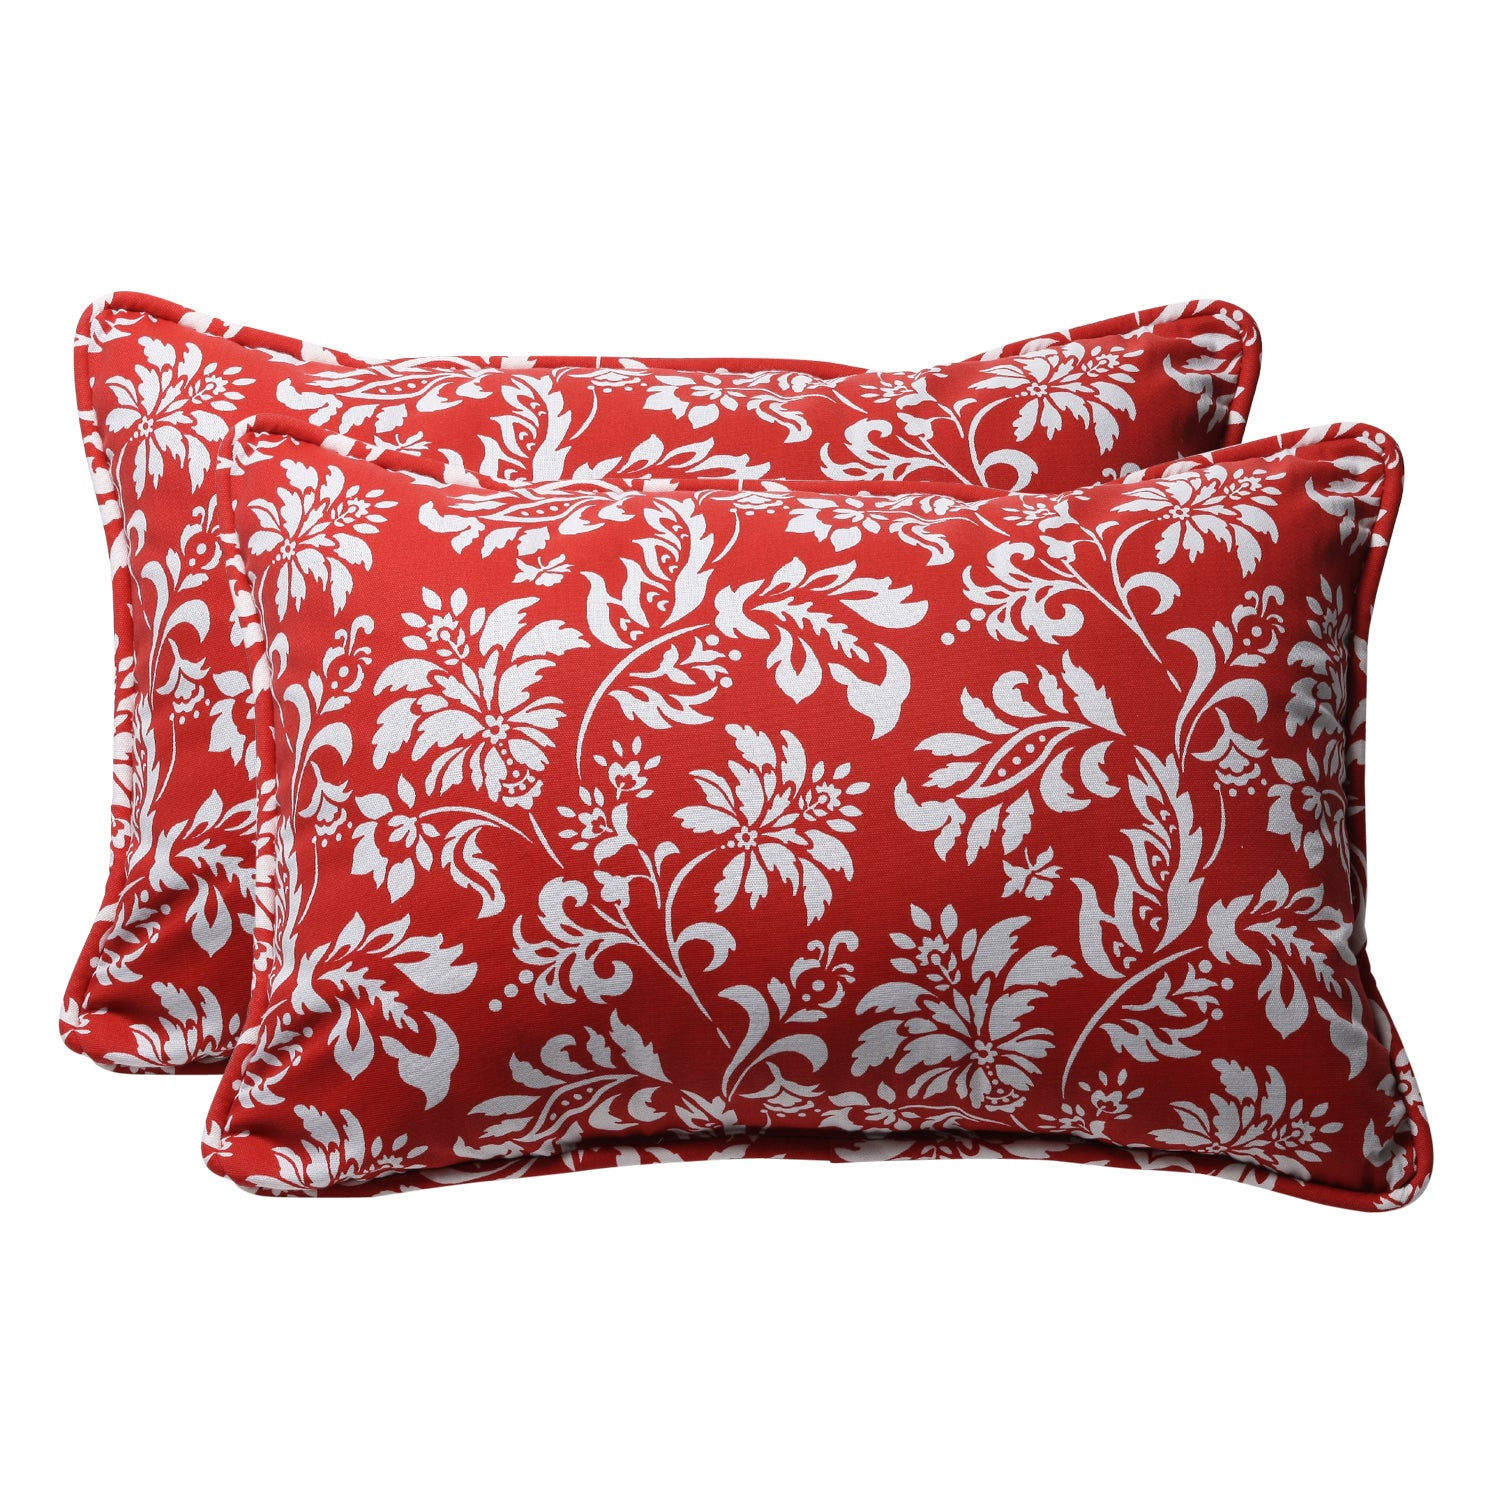 Decorative Red/ White Floral Rectangle Outdoor Toss Pillow (Set of 2)